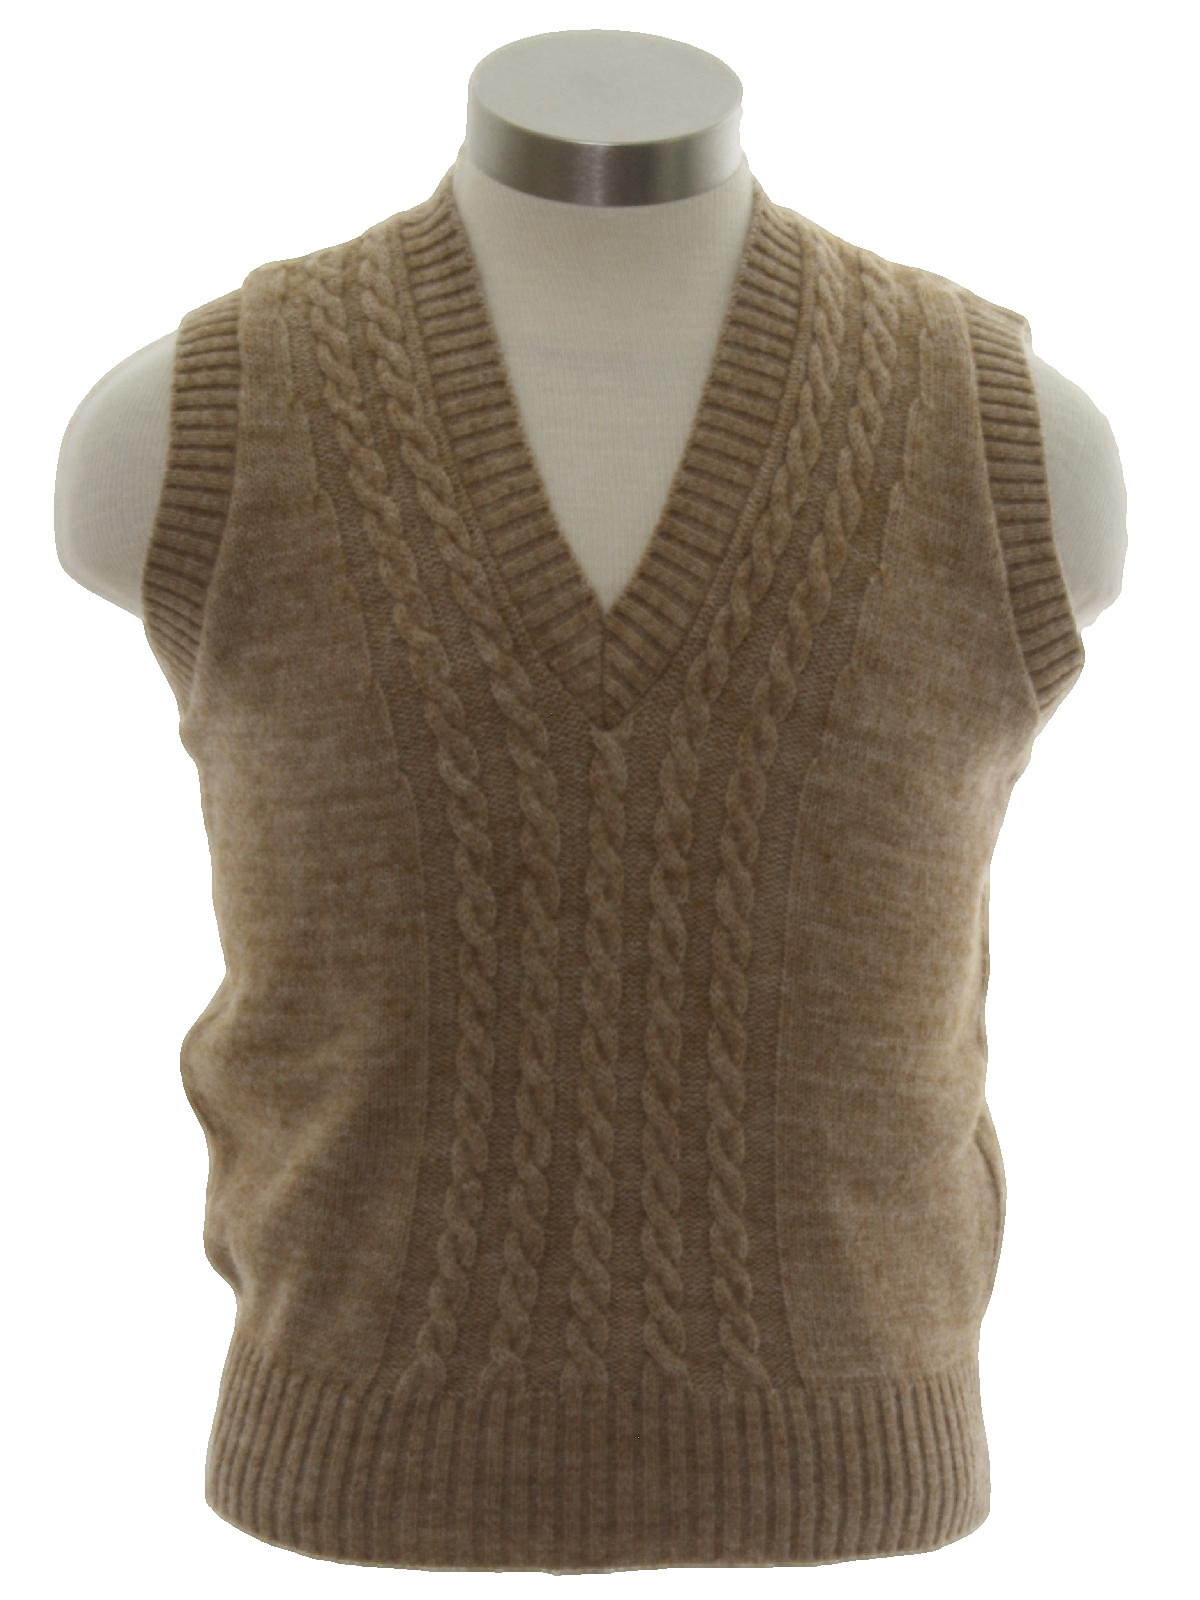 Vintage 80s Sweater 80s Its Pure Gould Mens Heathered Tan Cable